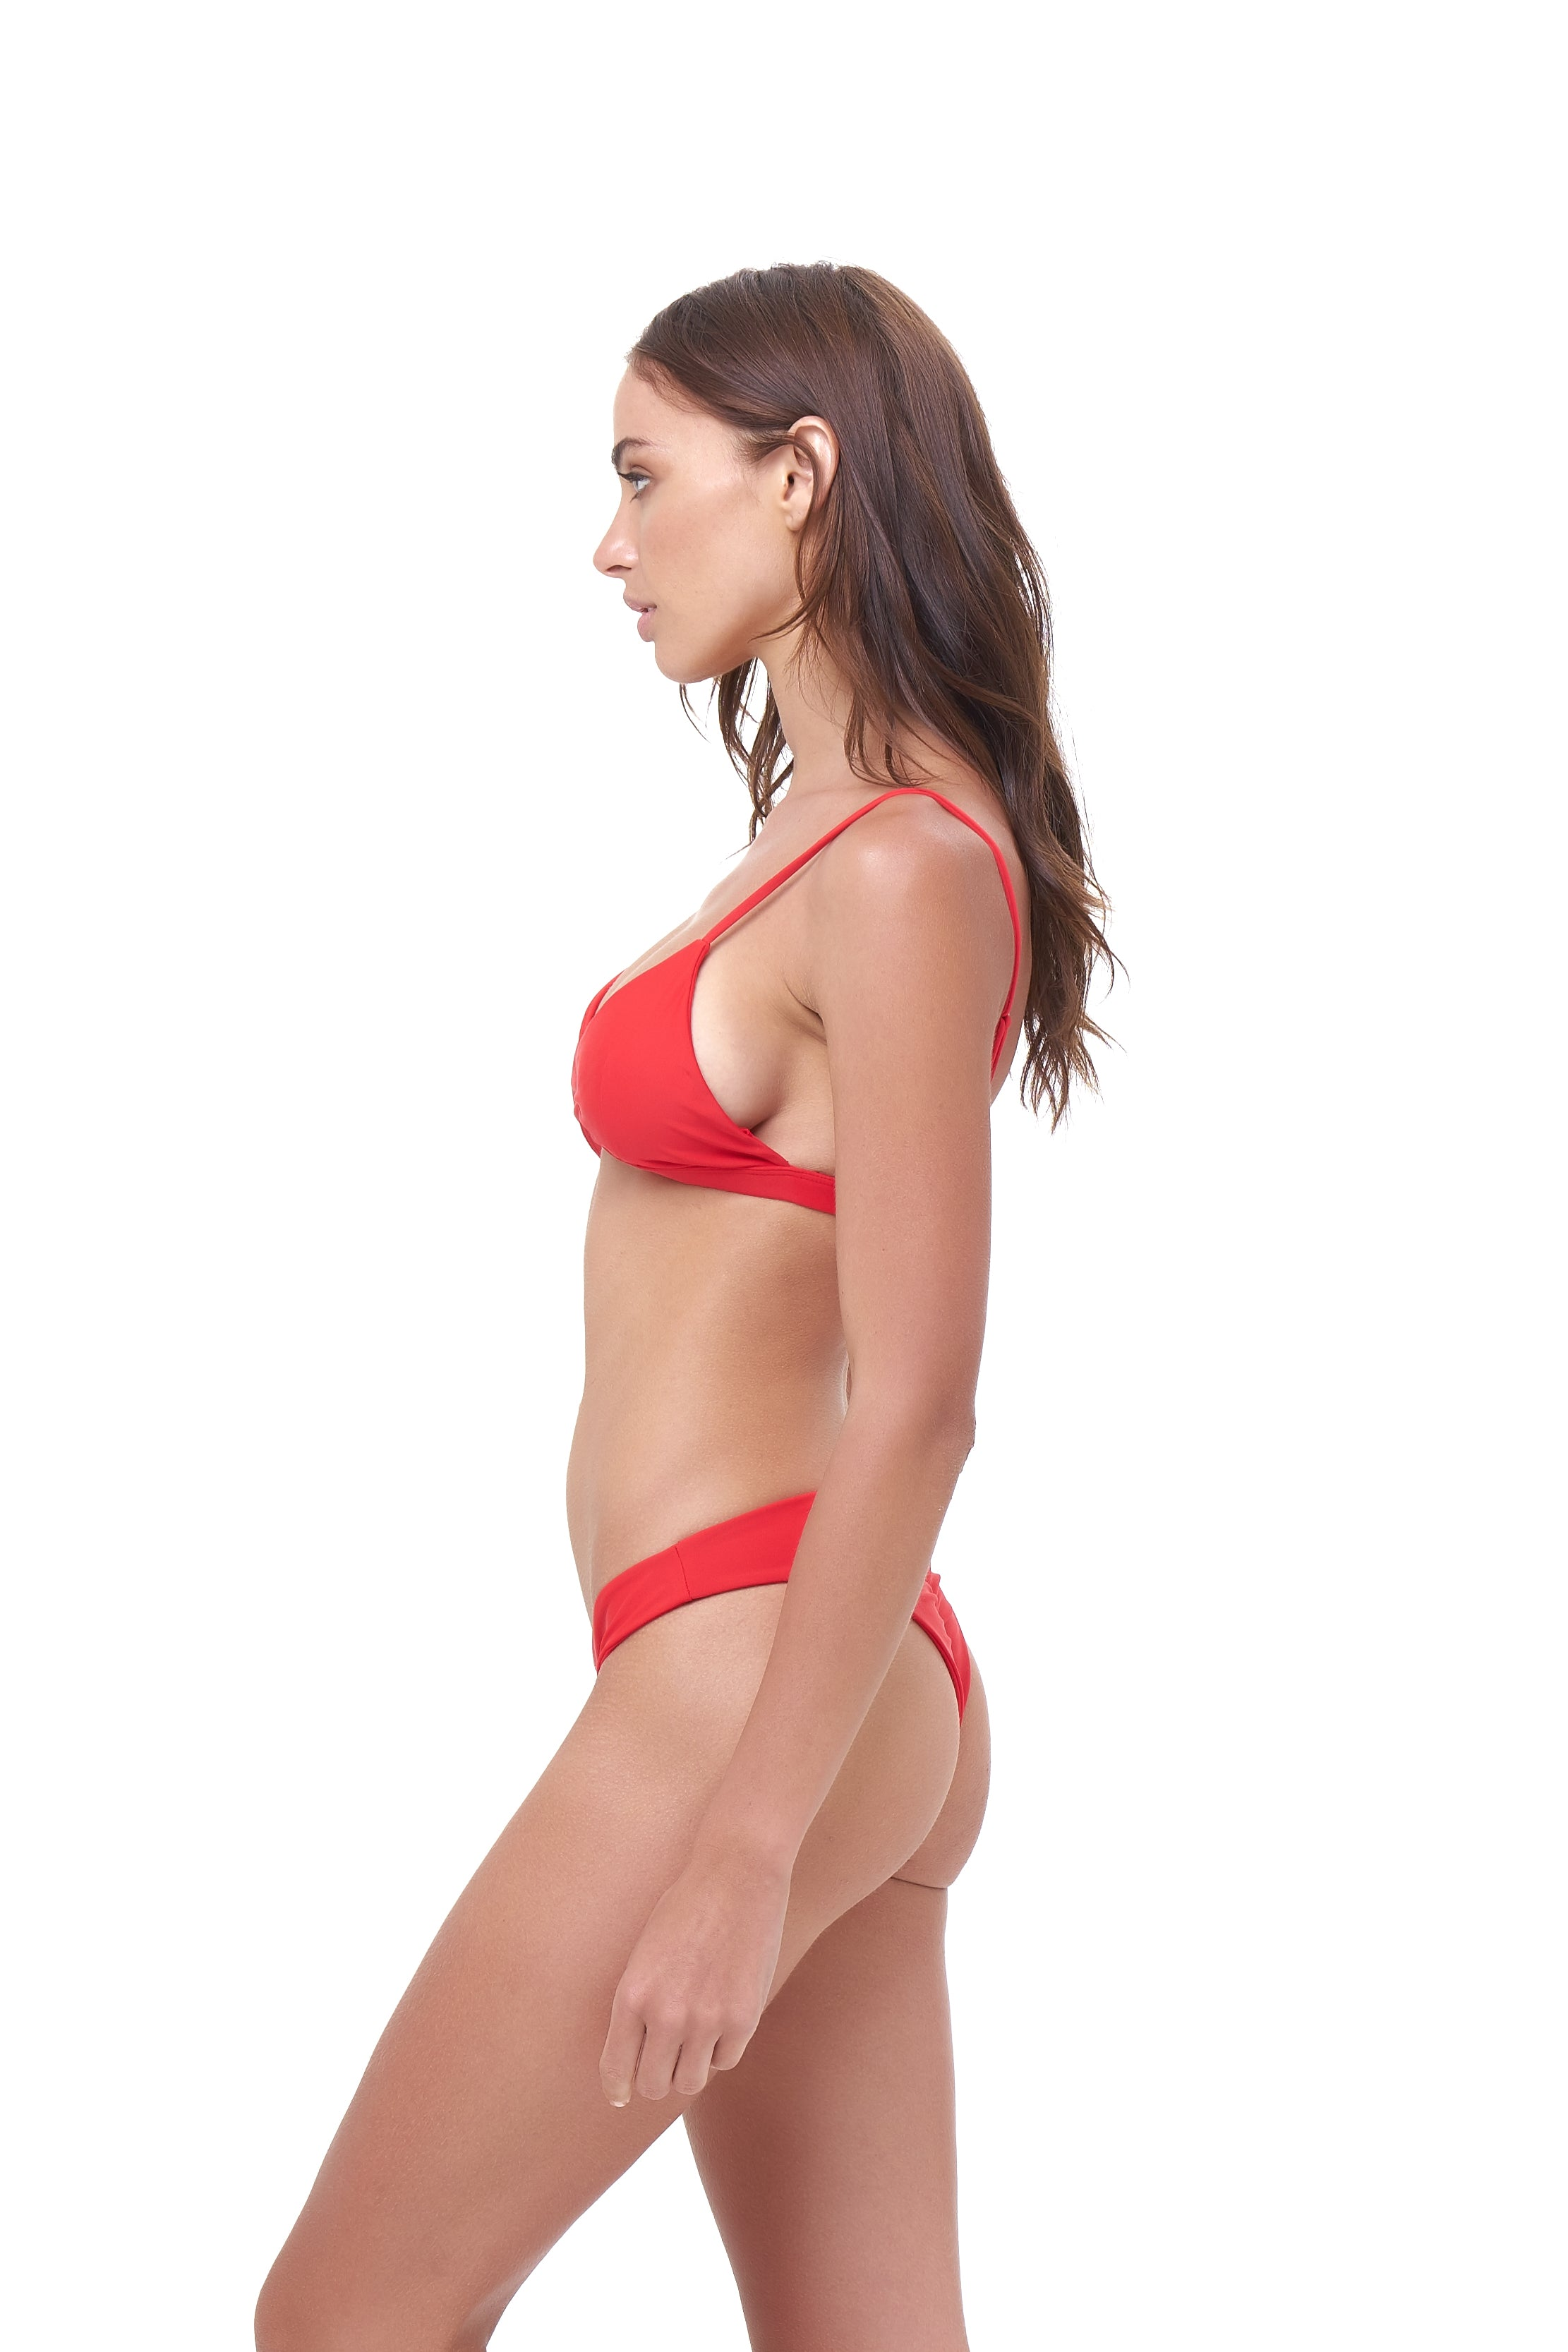 Storm Swimwear - Mallorca - Triangle Bikini Top with removable padding in Scarlet